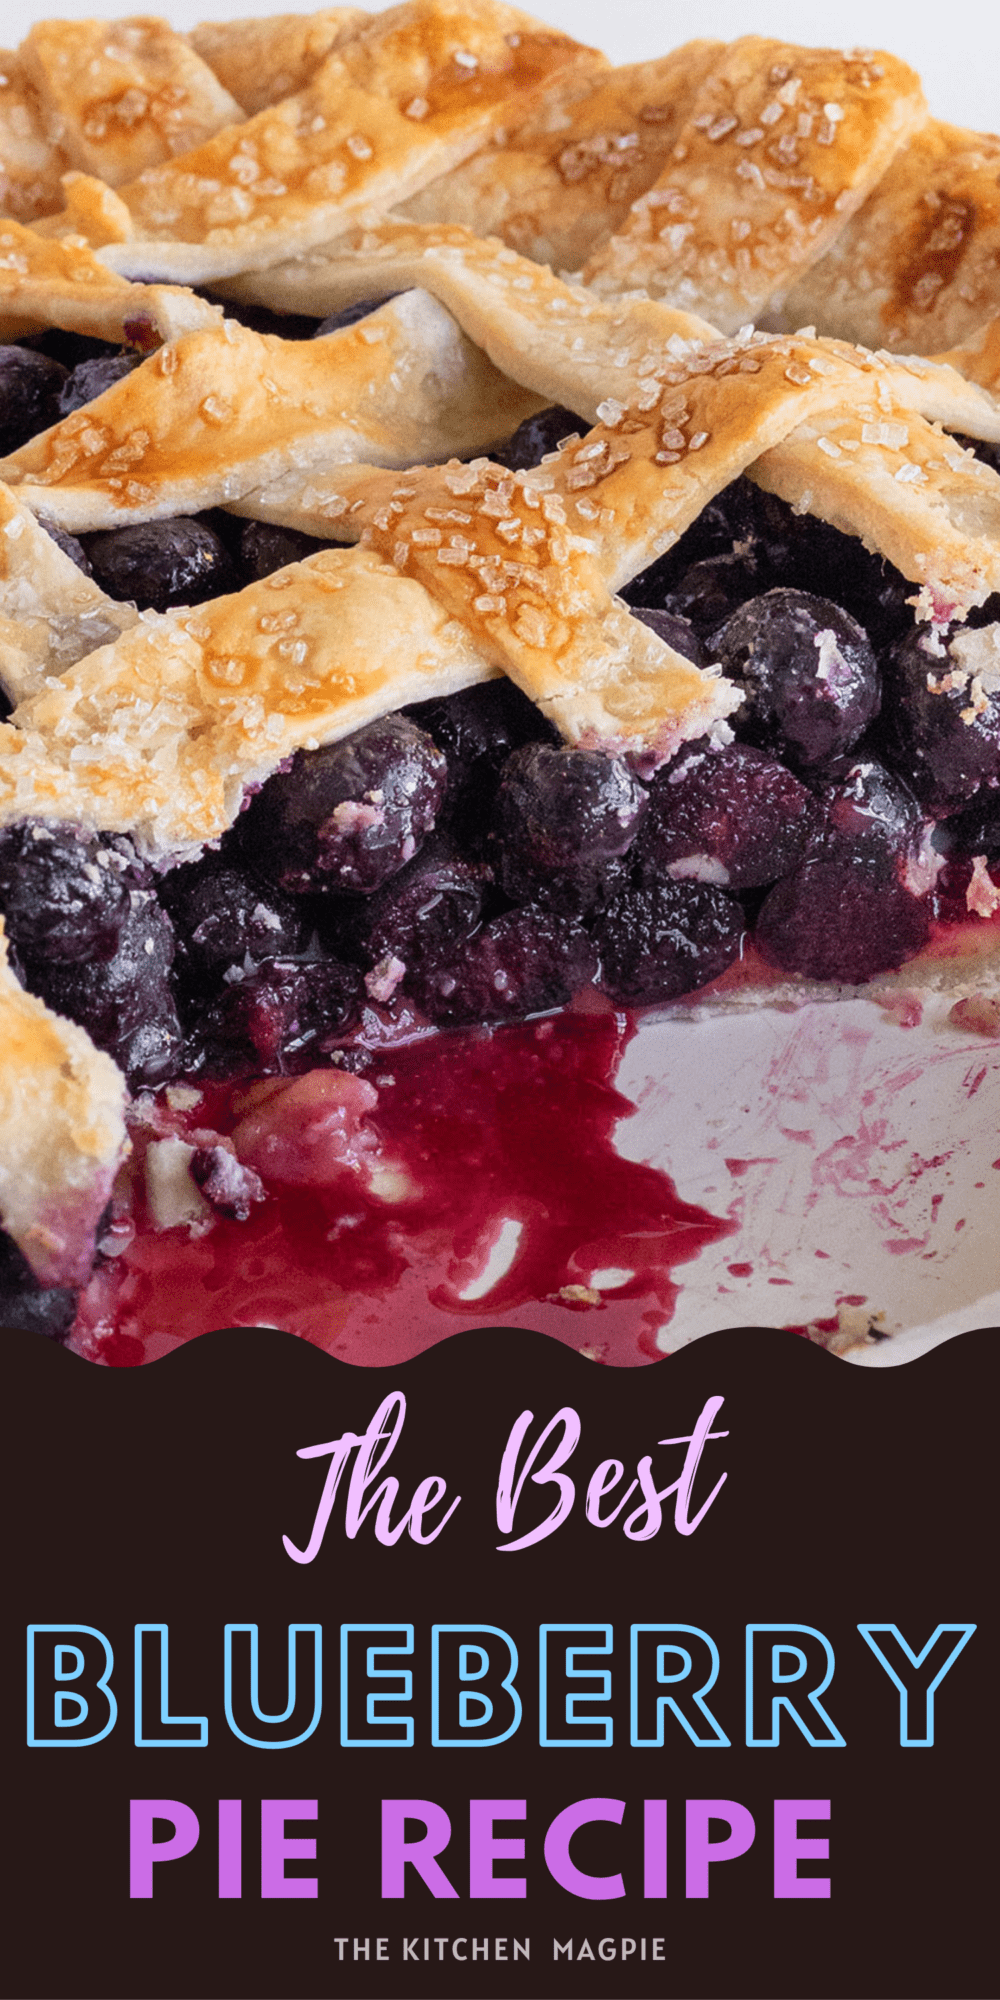 Fresh blueberries are baked into a lattice topped blueberry pie and served with vanilla ice cream for the perfect dessert!